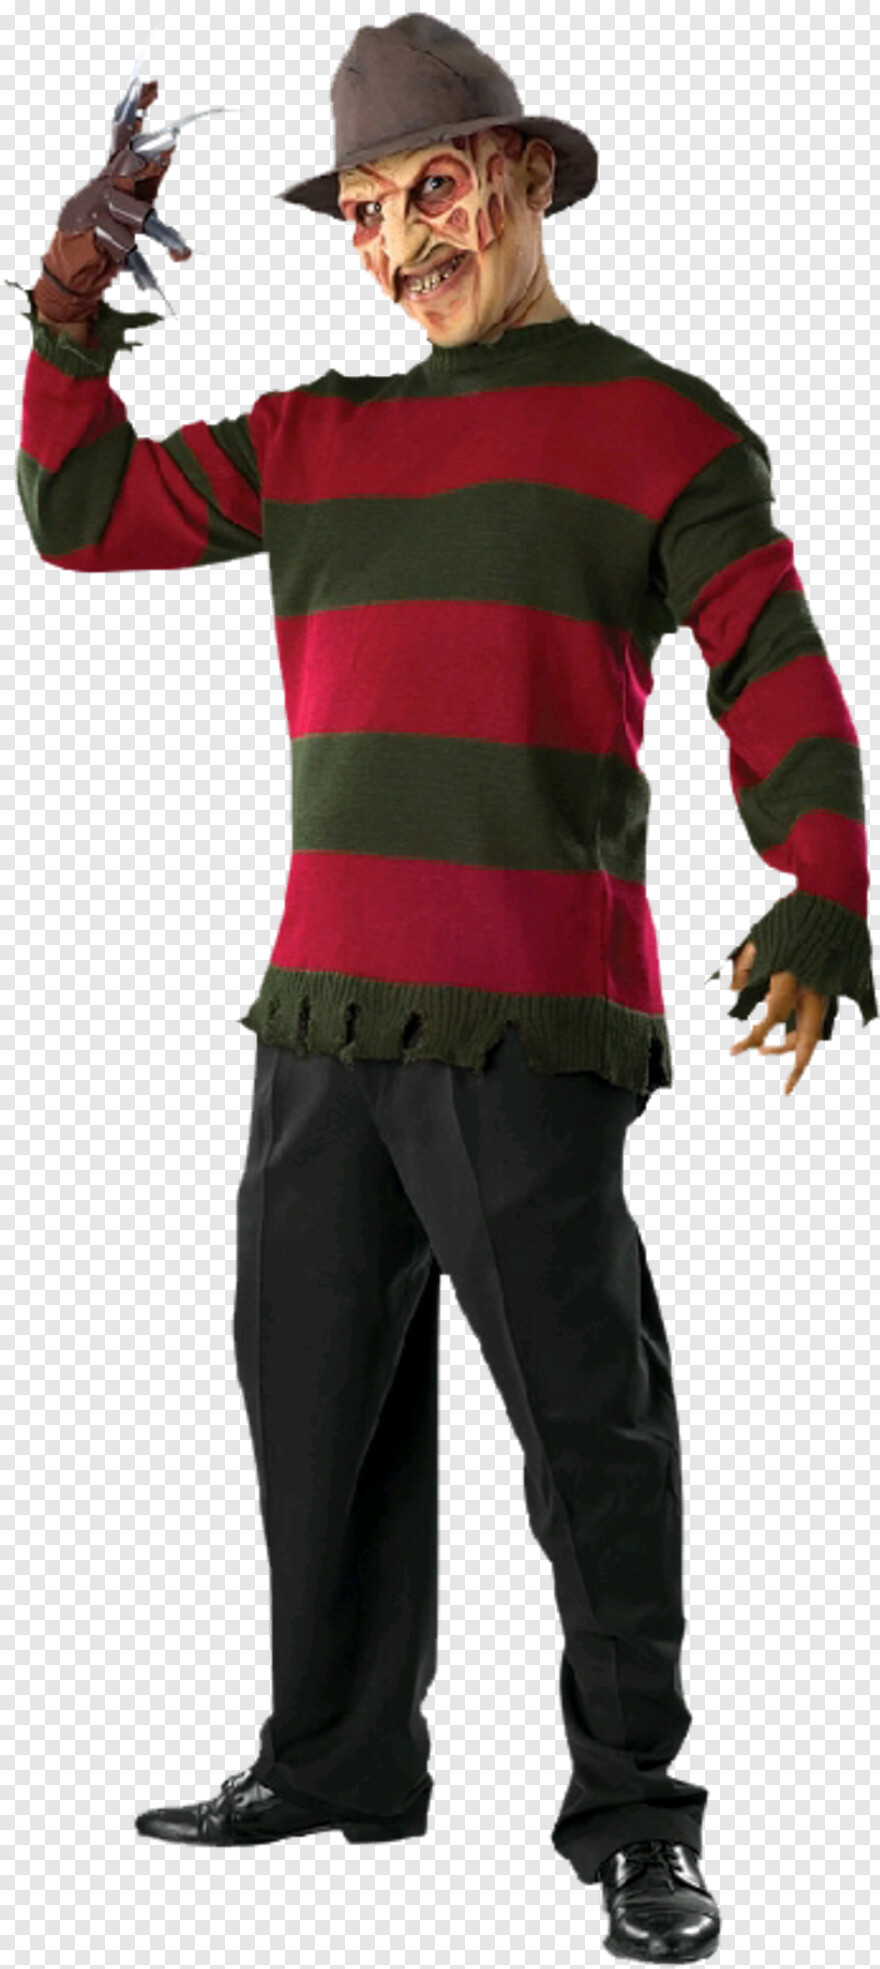 Freddy Krueger - Nightmare On Elm Street Costume, Transparent Png@pngjoy.com